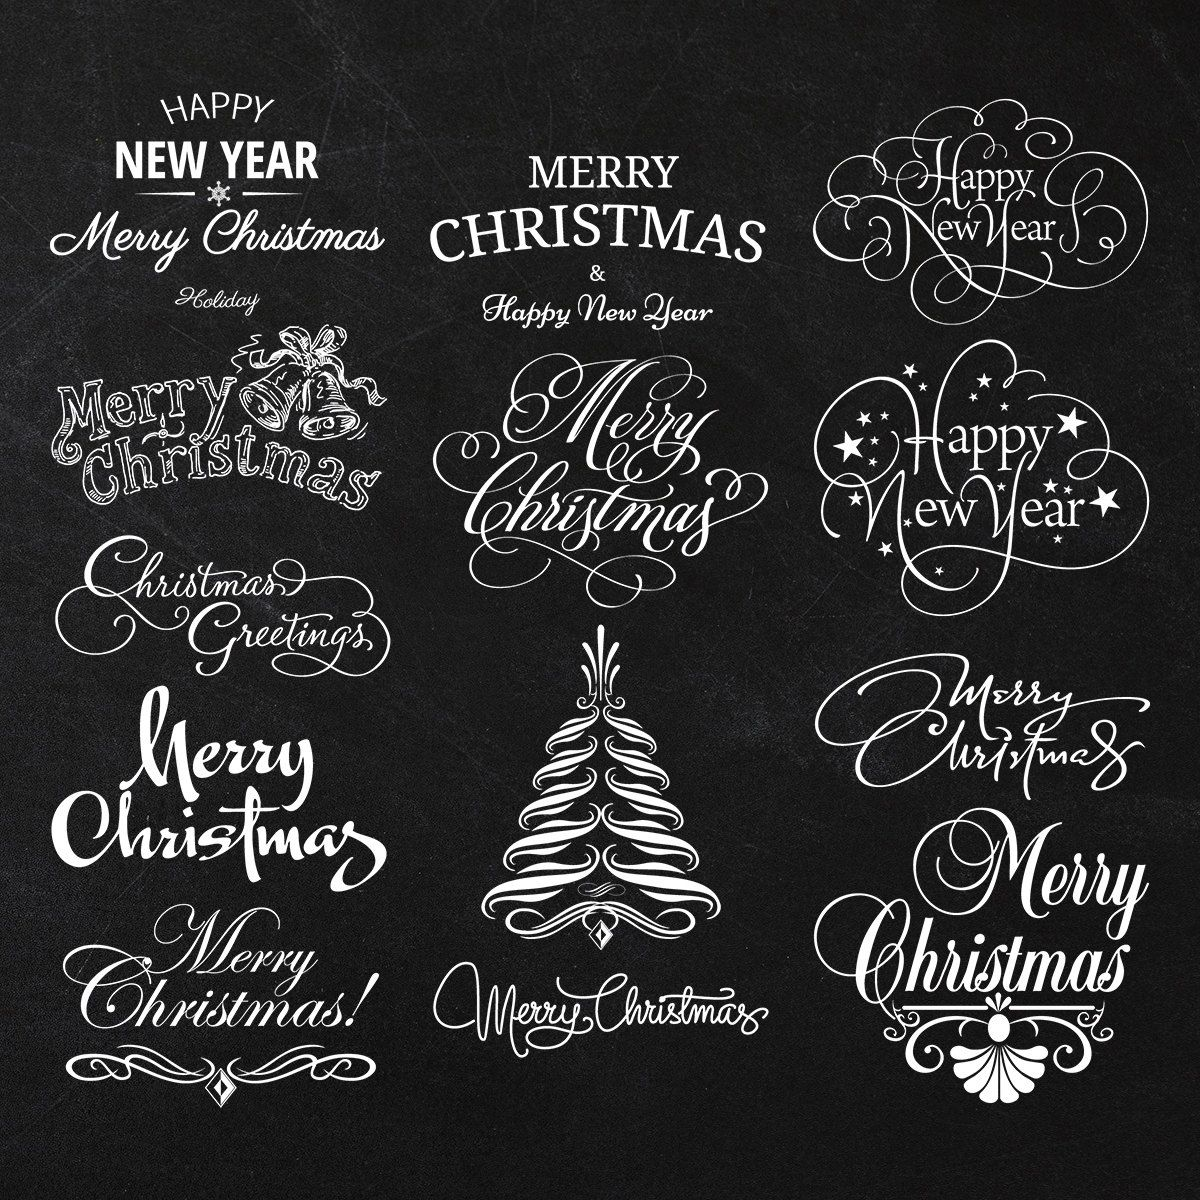 Instant Download Calligraphy Merry Christmas And Happy New